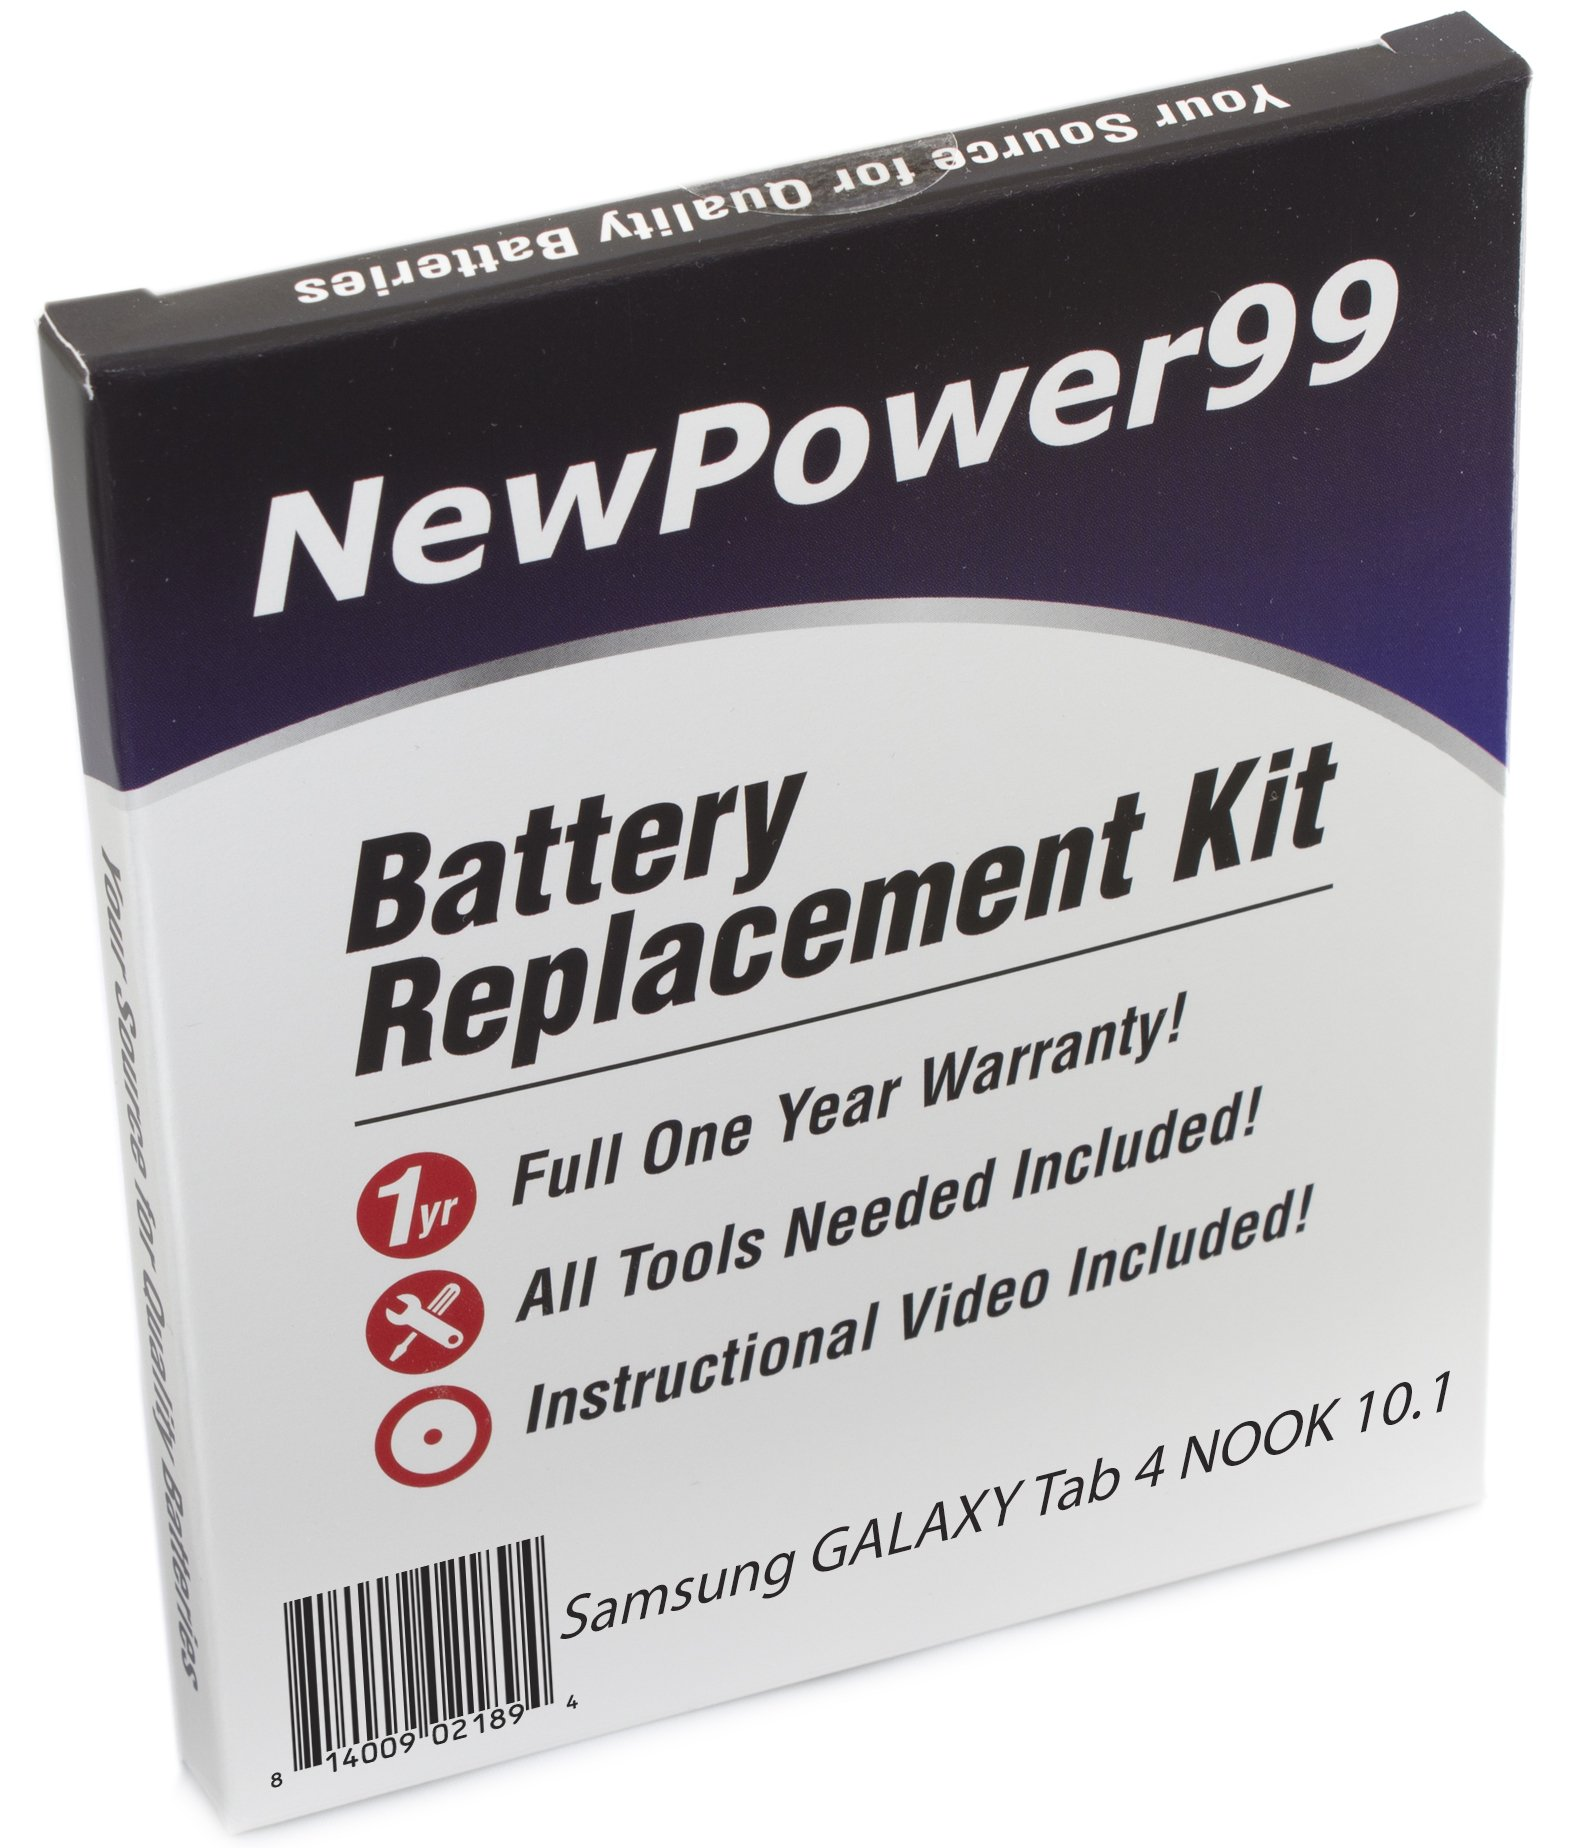 NewPower99 Battery Replacement Kit with Battery, Instructions and Tools for Samsung Galaxy Tab 4 Nook 10.1